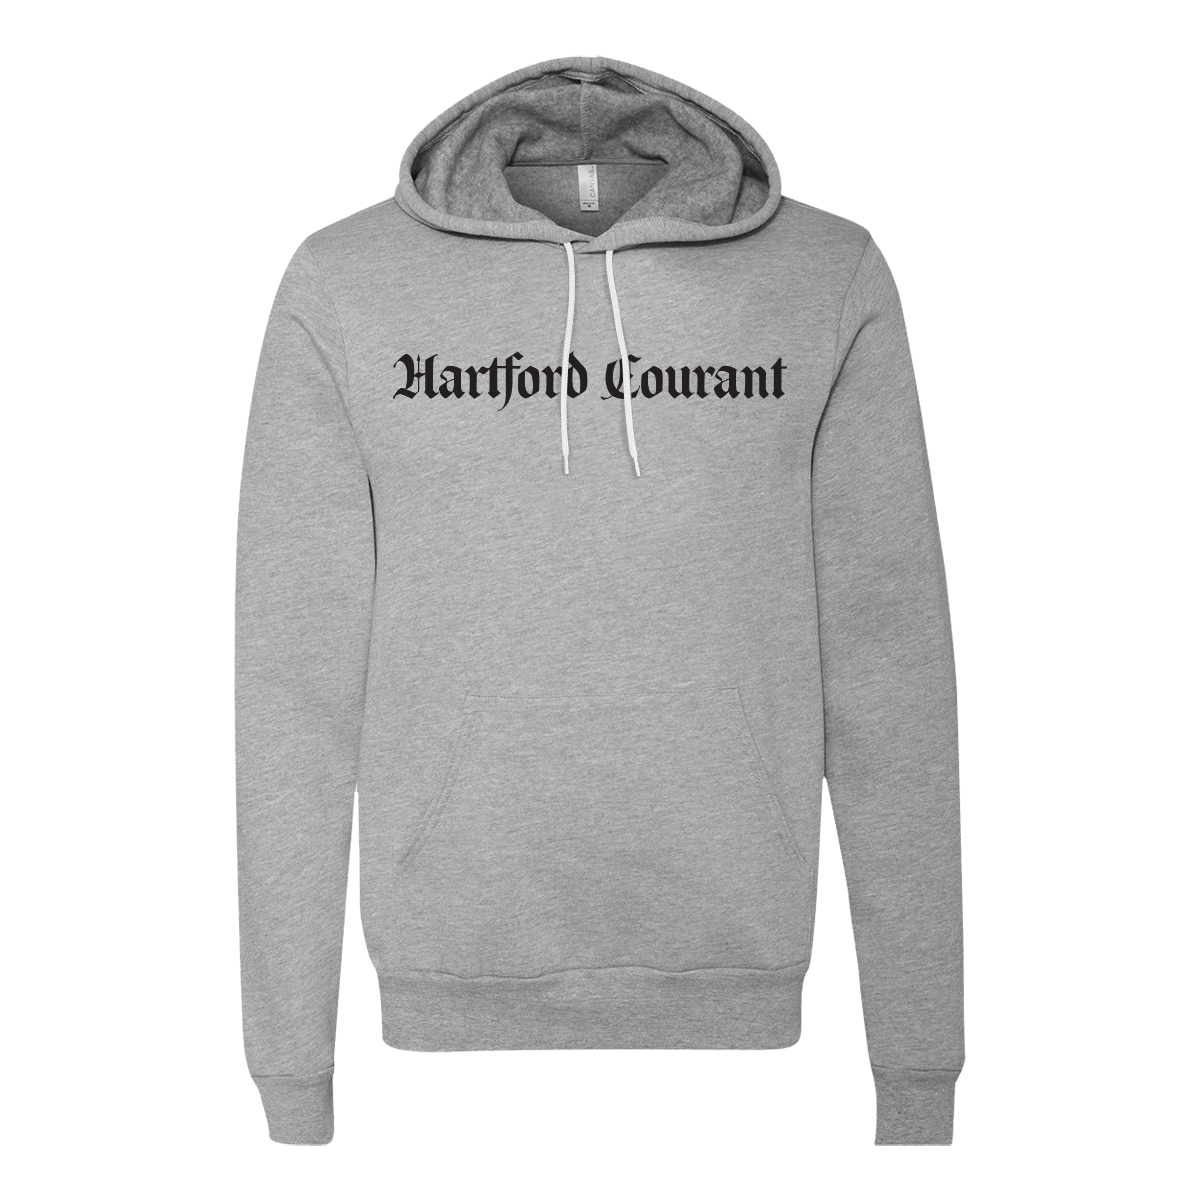 Hartford Courant Pullover Hoodie